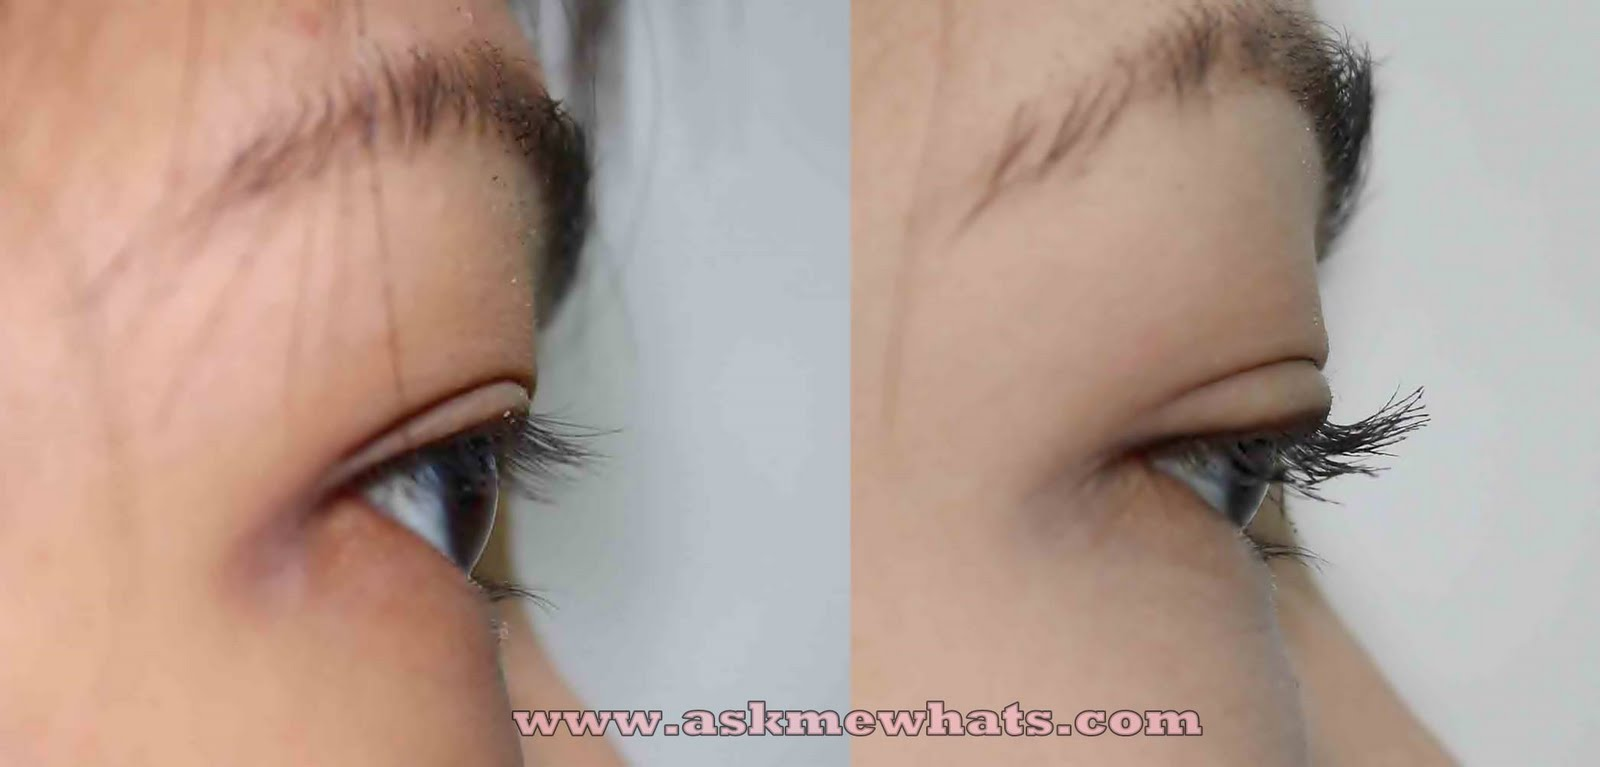 a3c297eca03 After curling the lashes and applied Maybelline's Volum' Express Magnum  Waterproof Mascara. 2 application on each eye